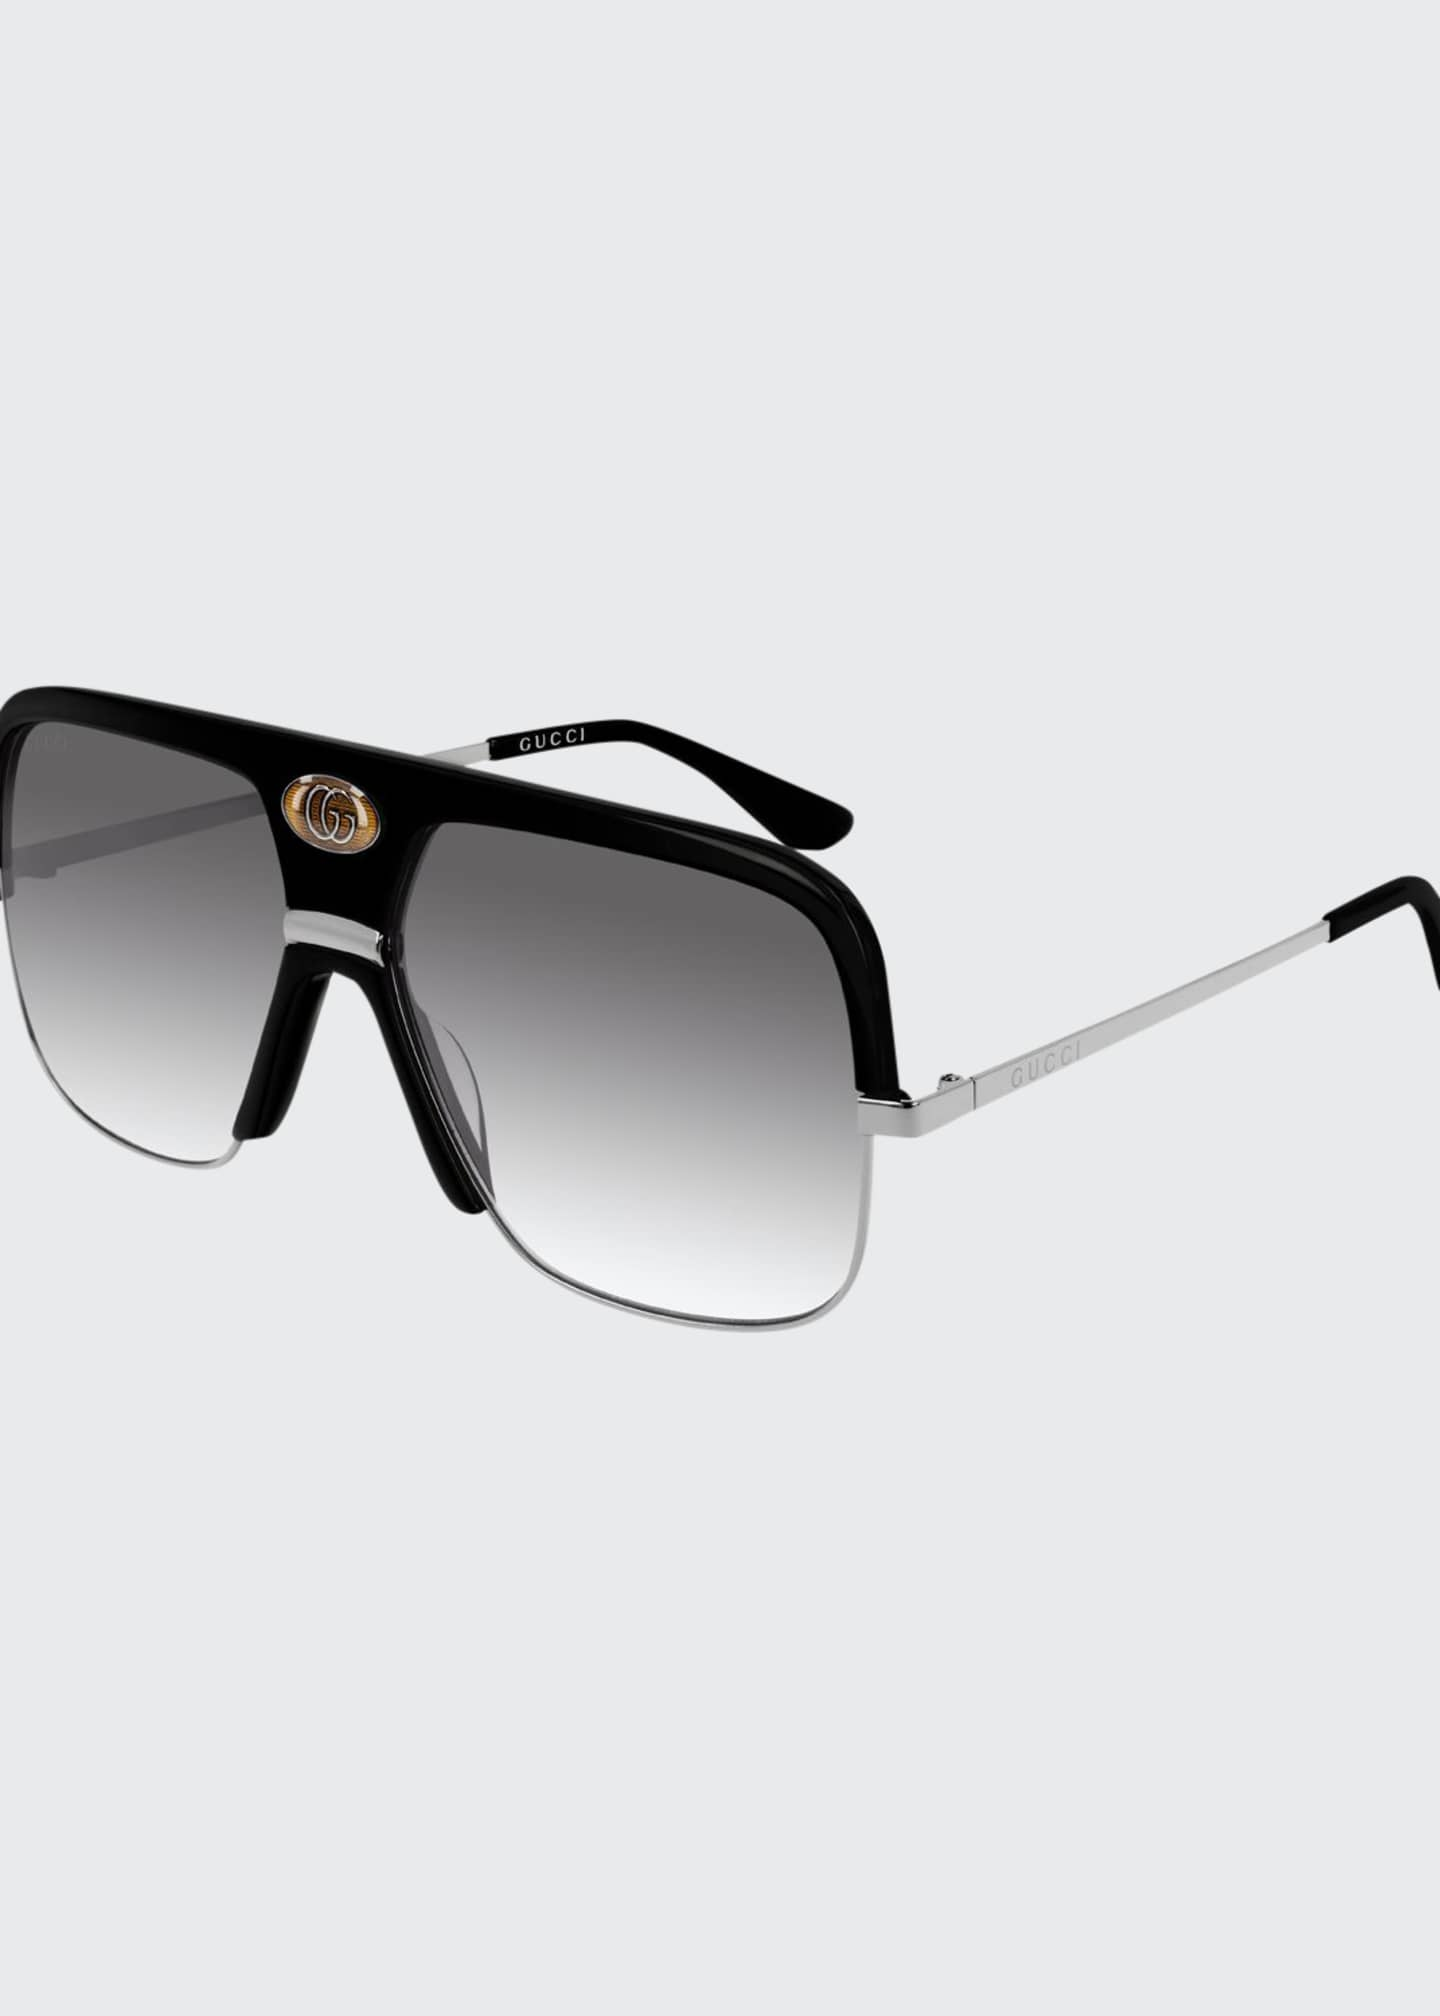 Image 1 of 1: Men's Aviator Sunglasses with Exaggerated Logo Brow